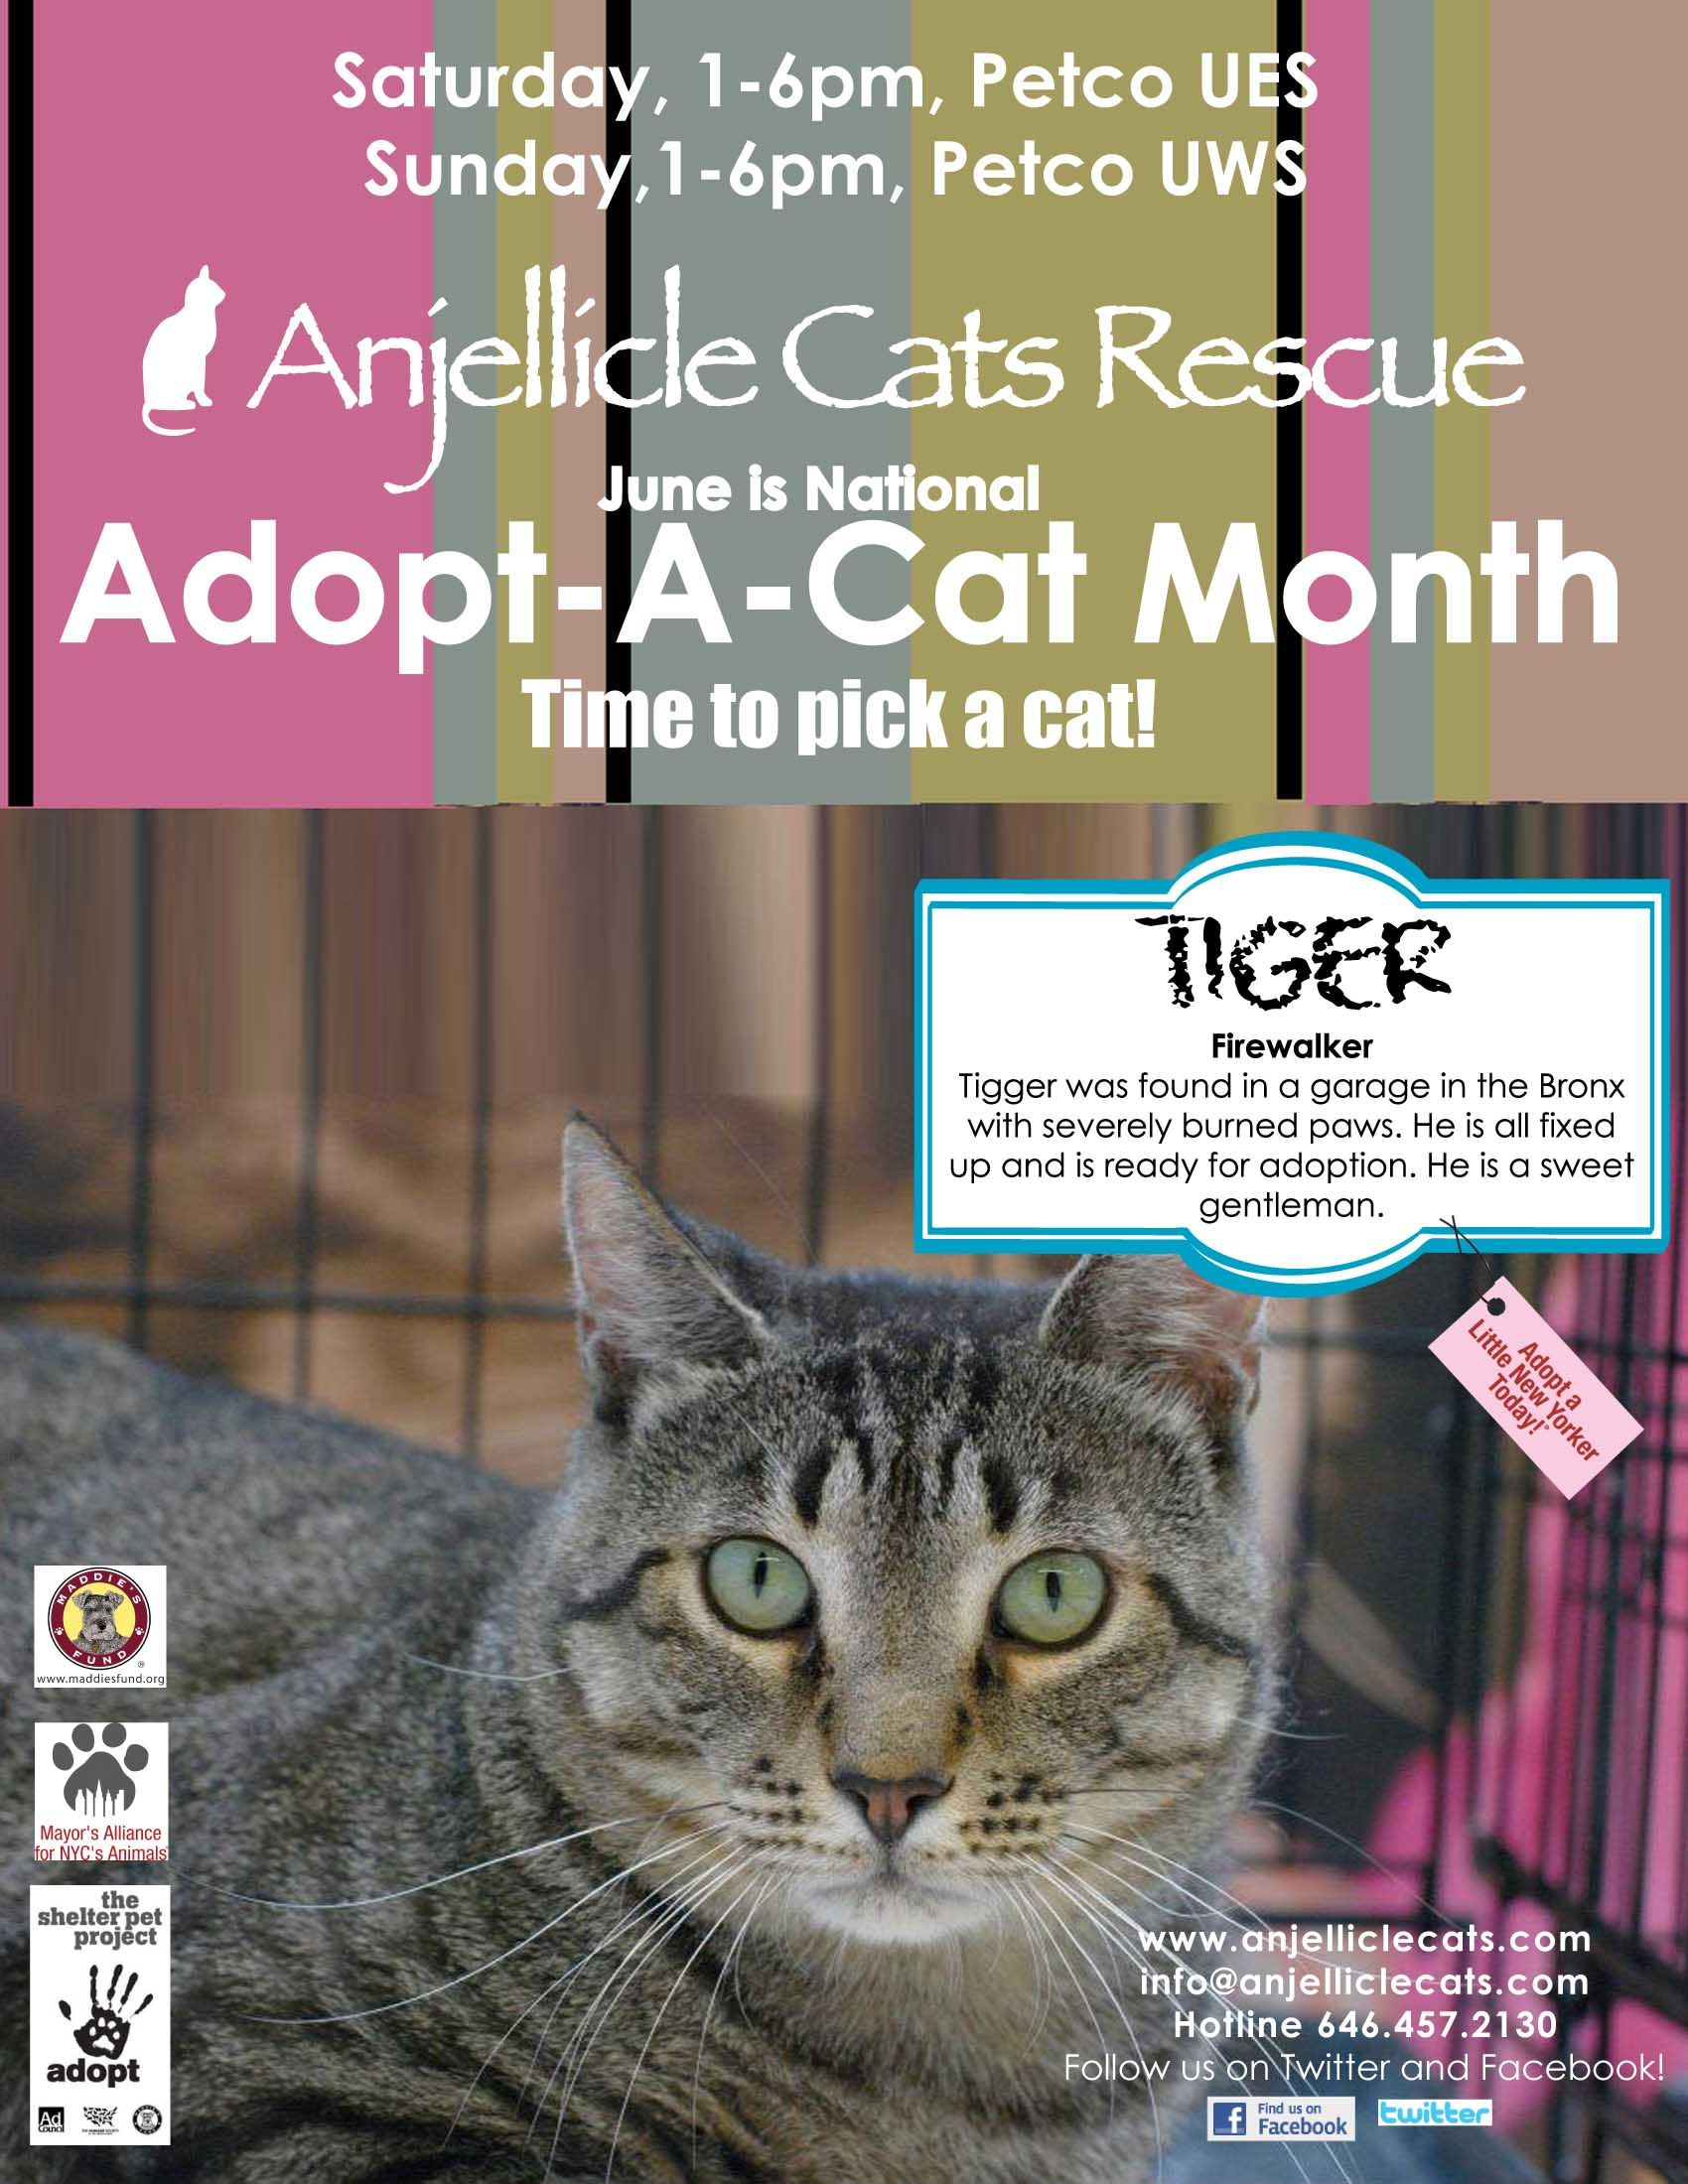 Tiger Adoption Events Saturdays And Sunday To See Our Adoptable Cats Petco 1280 Lexington Ave Ny Sat 1 6pm Petco Cat Adoption Cat City Cat Rescue